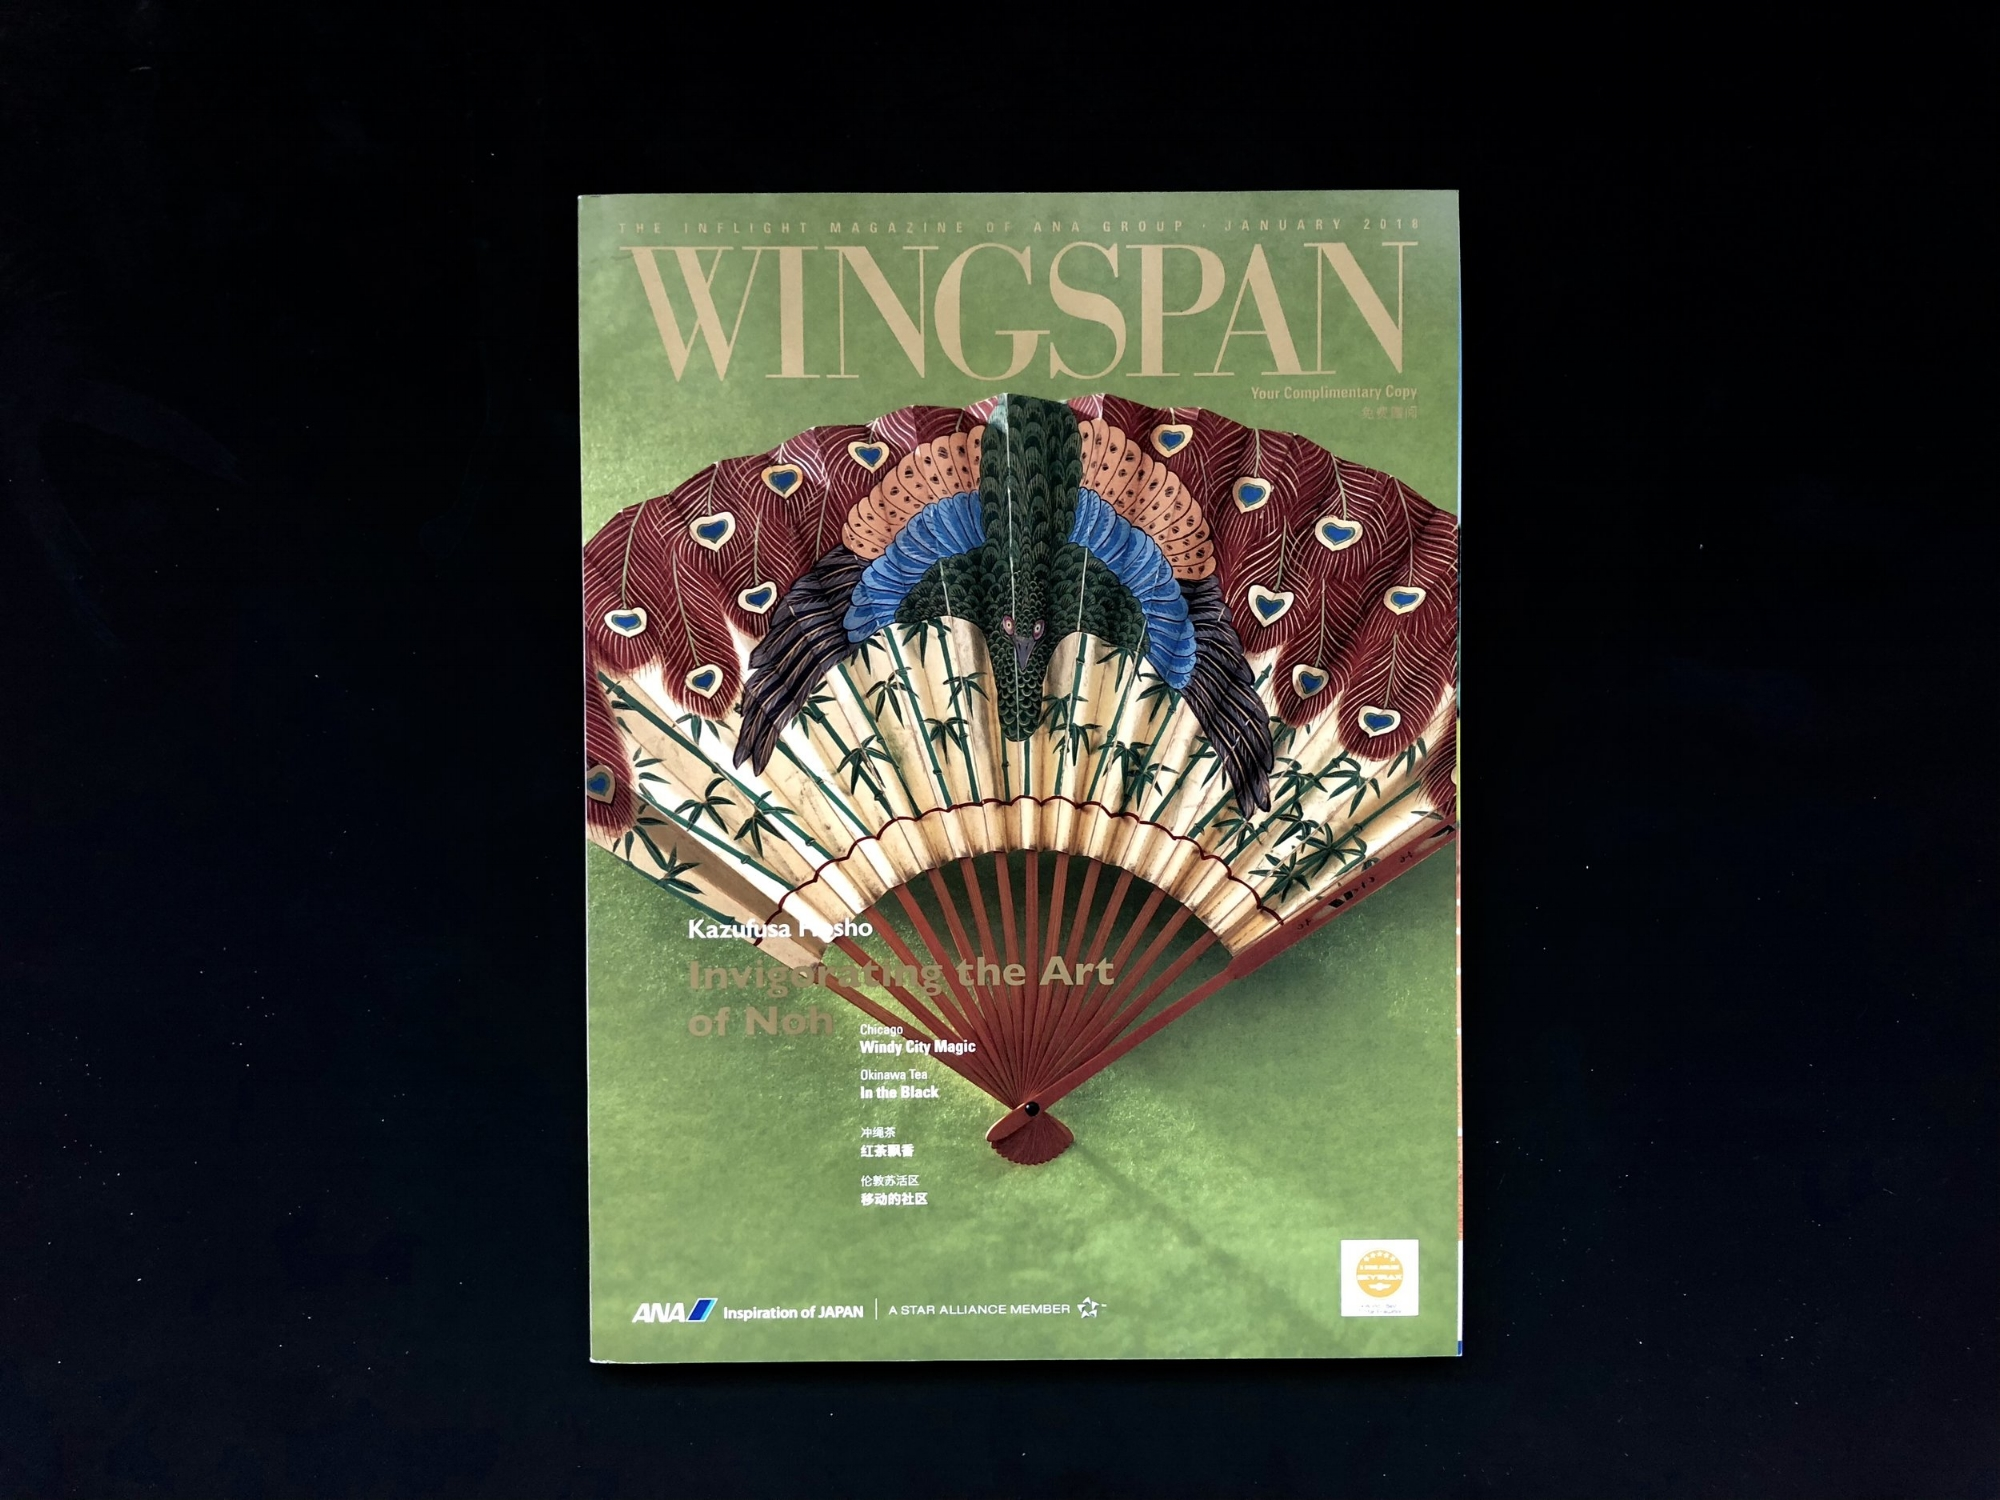 January 2018 issue of Wingspan Magazine